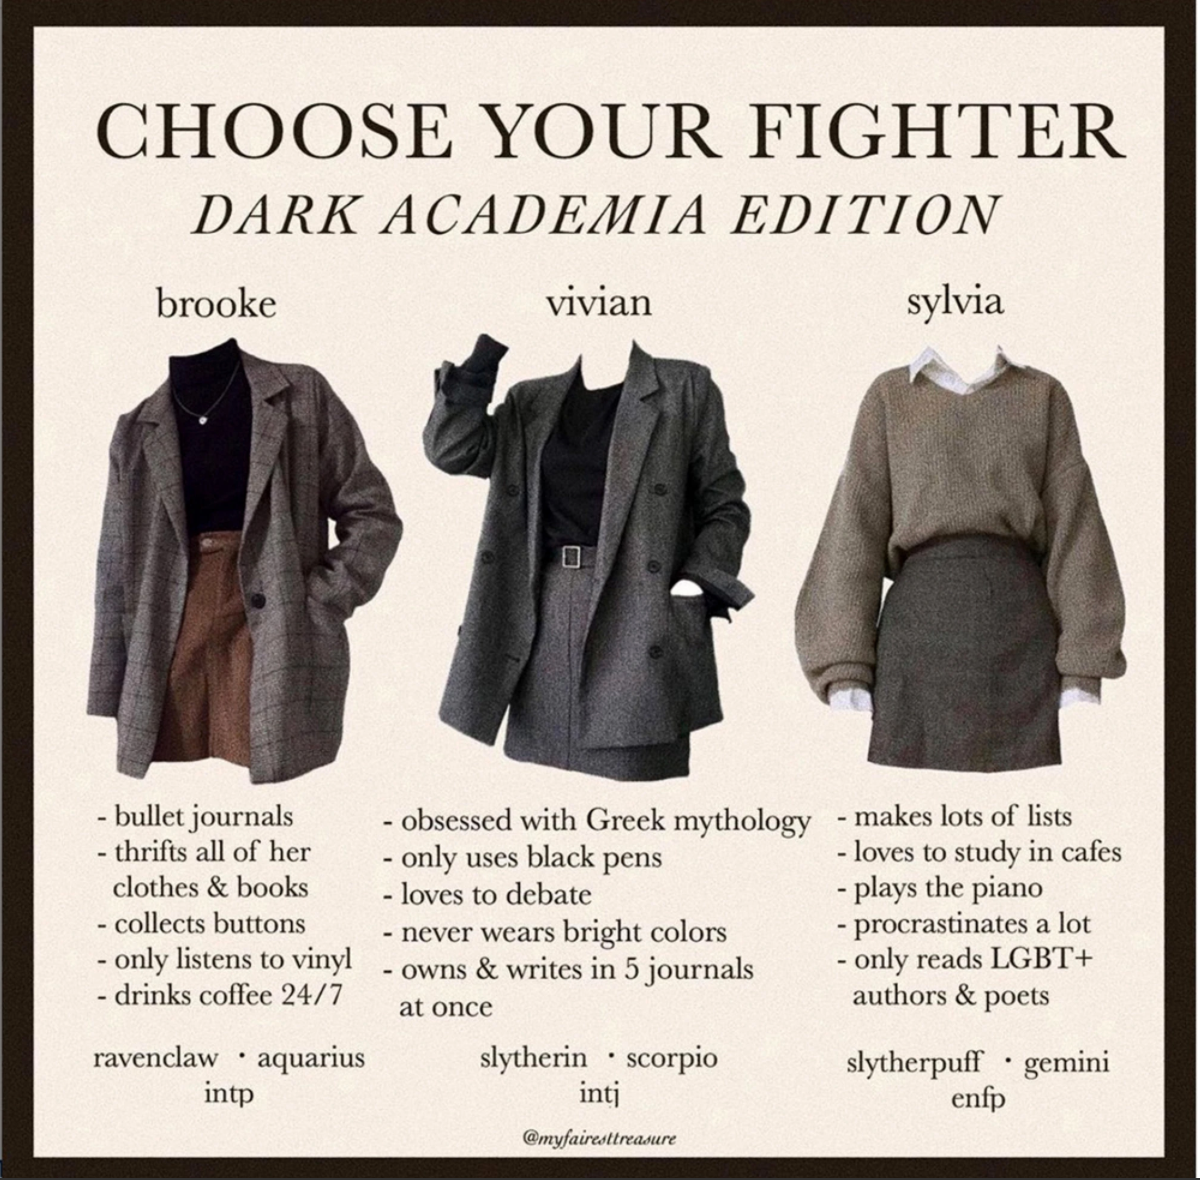 Many Dark Academia posts are similar to the one above, depicting Instagram posts like lookbooks, book recommendations, and guides to the popular aesthetic. Dark Academia social media accounts are found most prevalently on Instagram and Tumblr.